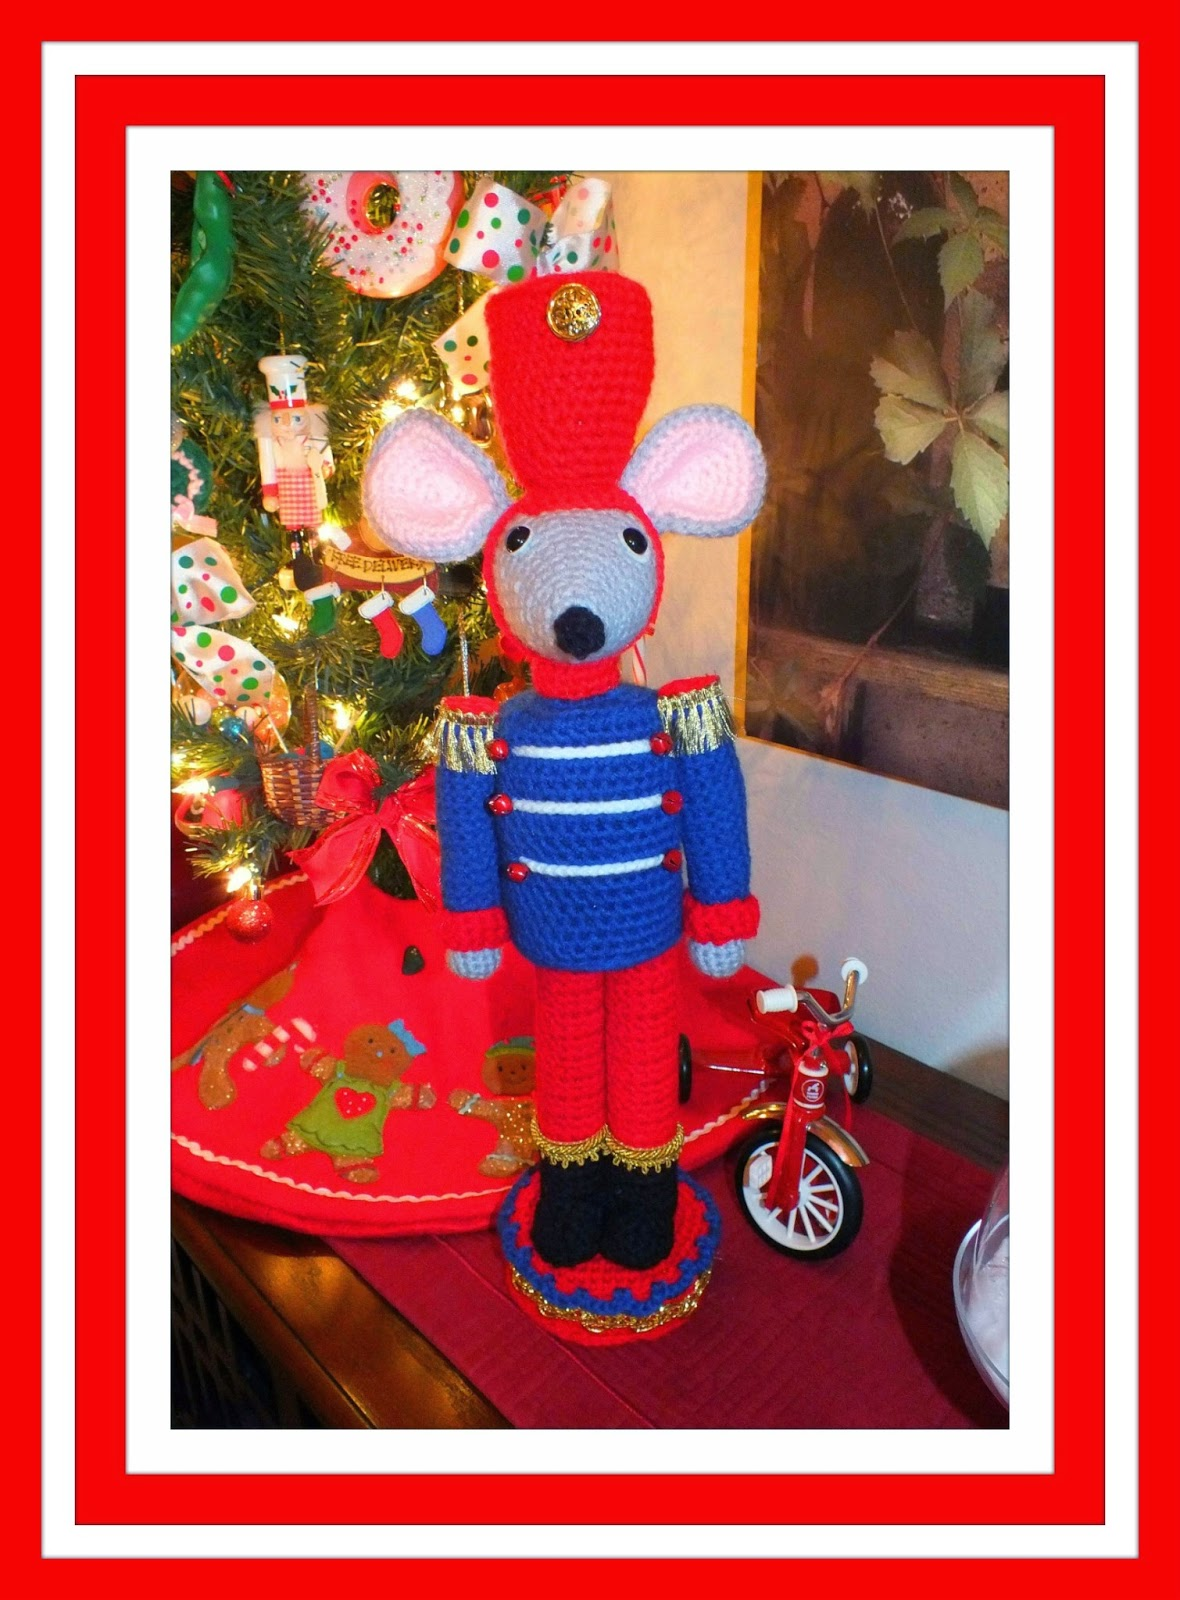 The Christmas Mouse Nutcracker & Doll Pattern© By Connie Hughes Designs©